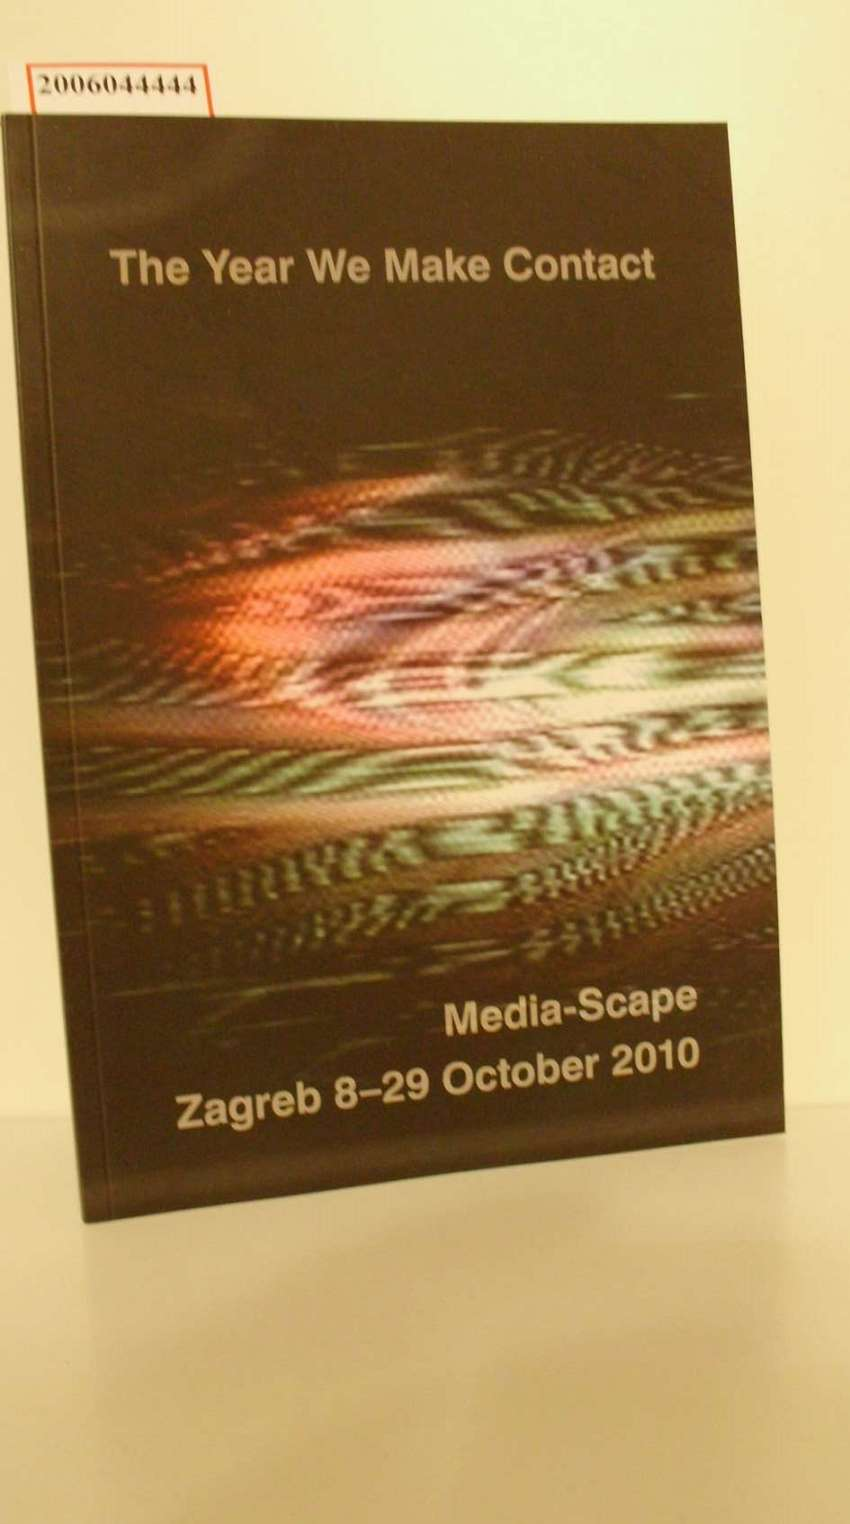 The Year We Make Contact / Media-Scape Zagreb 8 - 29 October 2010